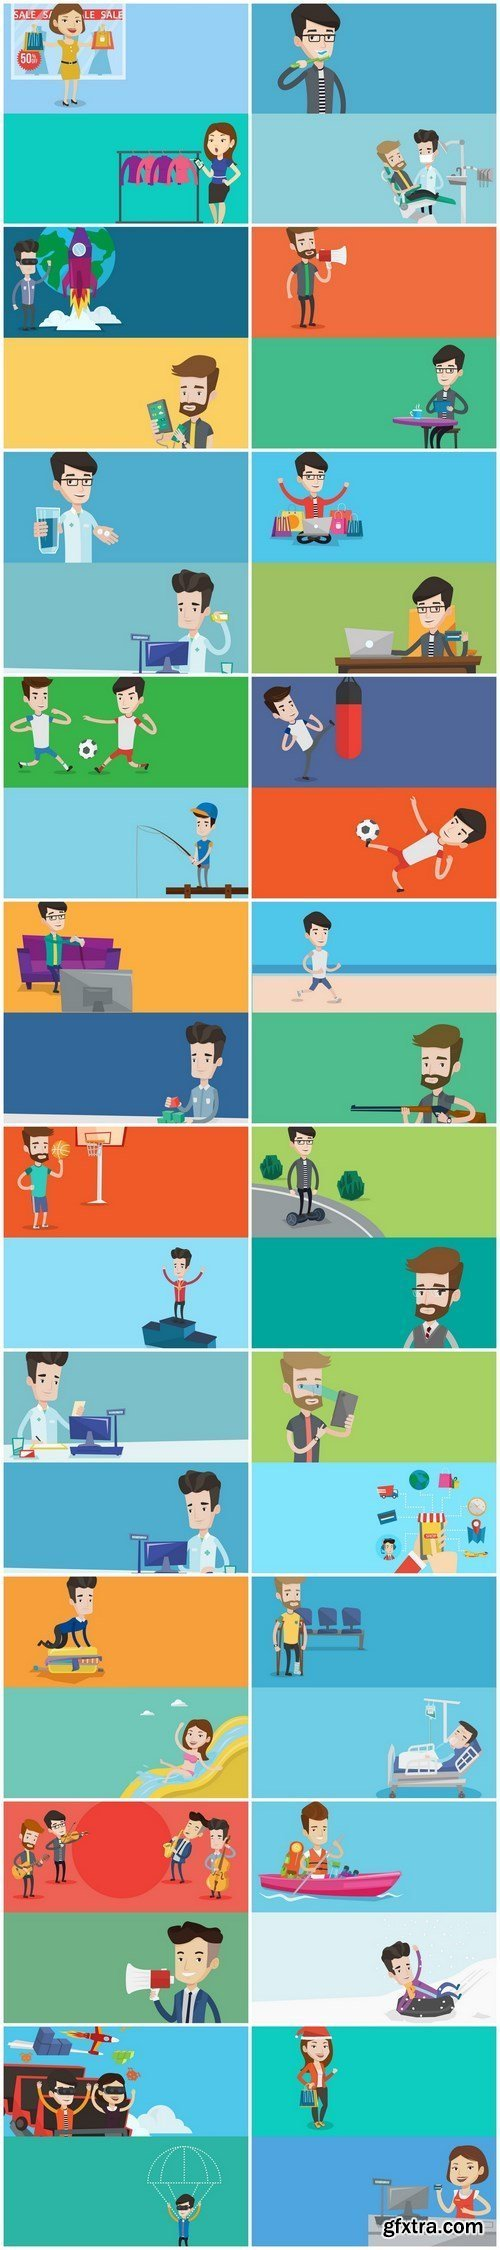 Life of people - flat design, 20xEPS